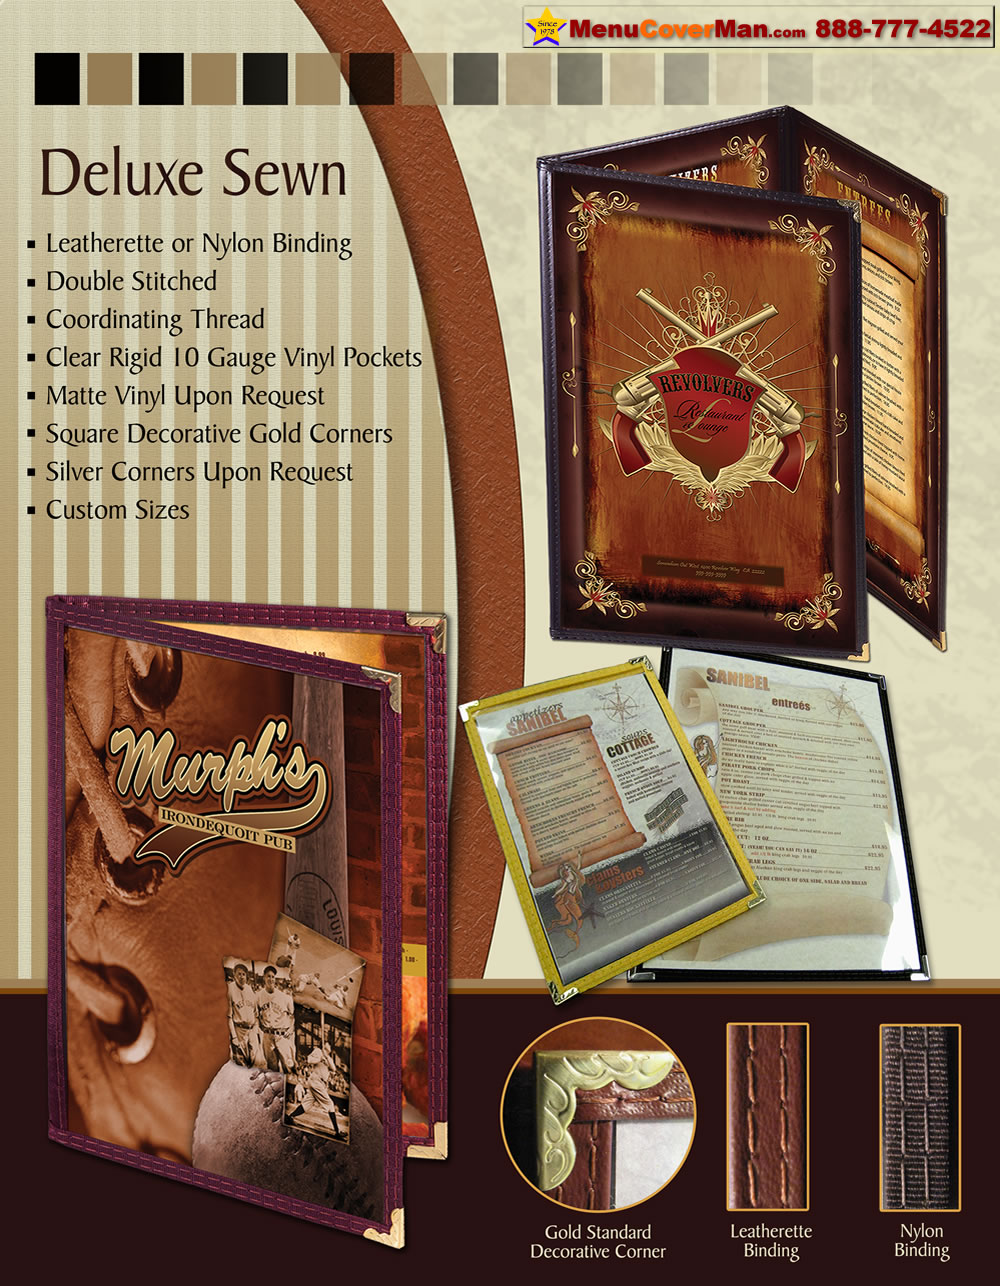 Picture of Menucoverman.com #DS-NYL-TED-8.5X11  - Deluxe Sewn Menu Covers - 2 Pocket - 4 View